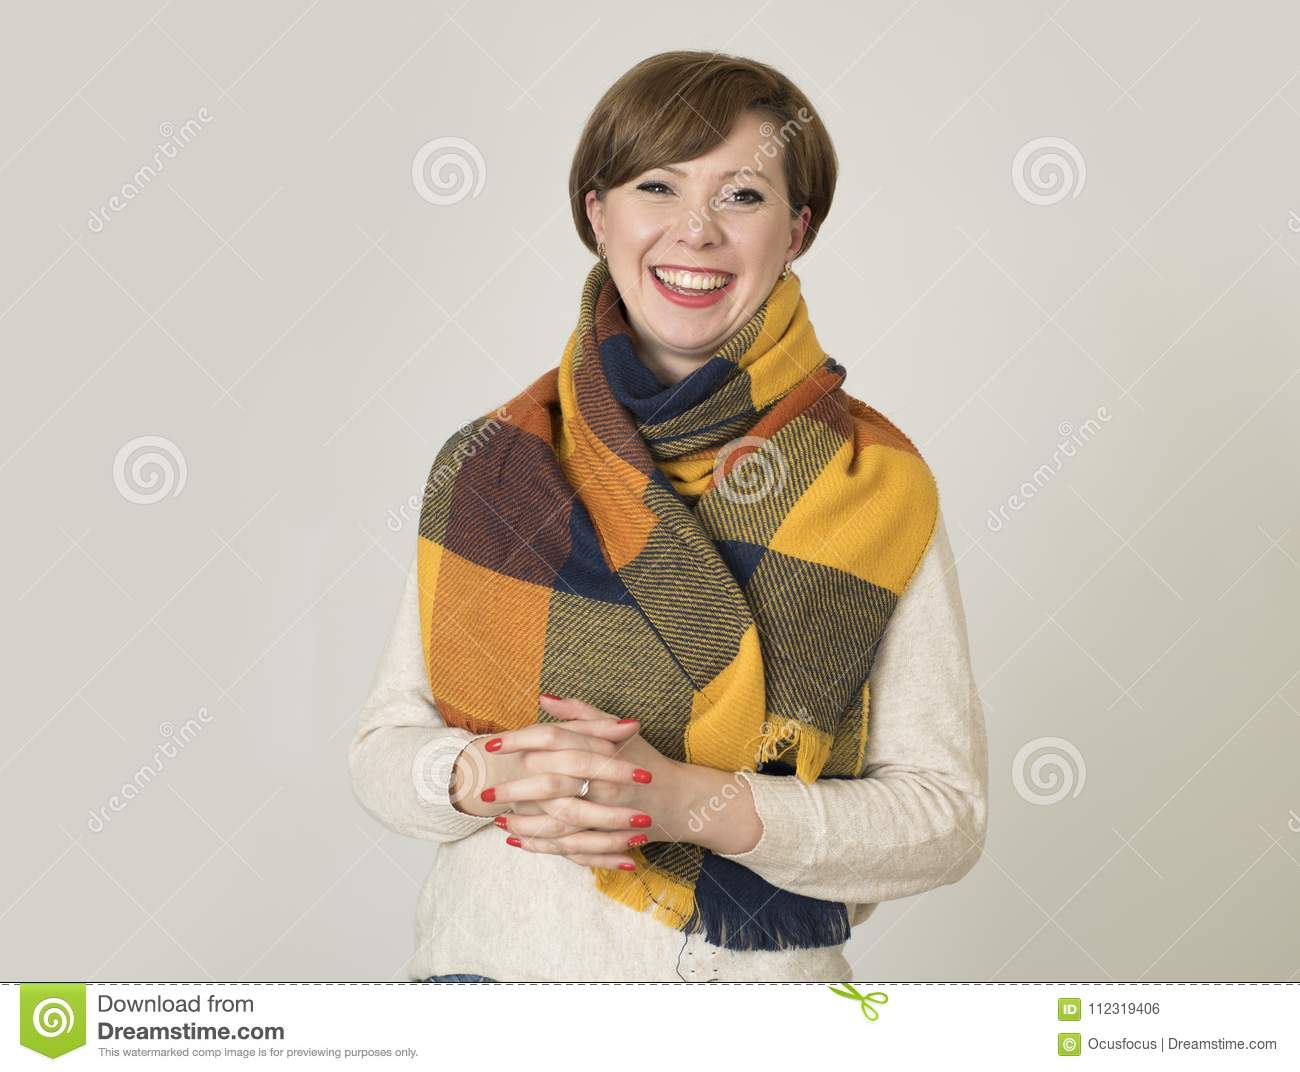 Young beautiful and stylish 30s red hair woman sweater and Autumn colorful scarf smiling happy